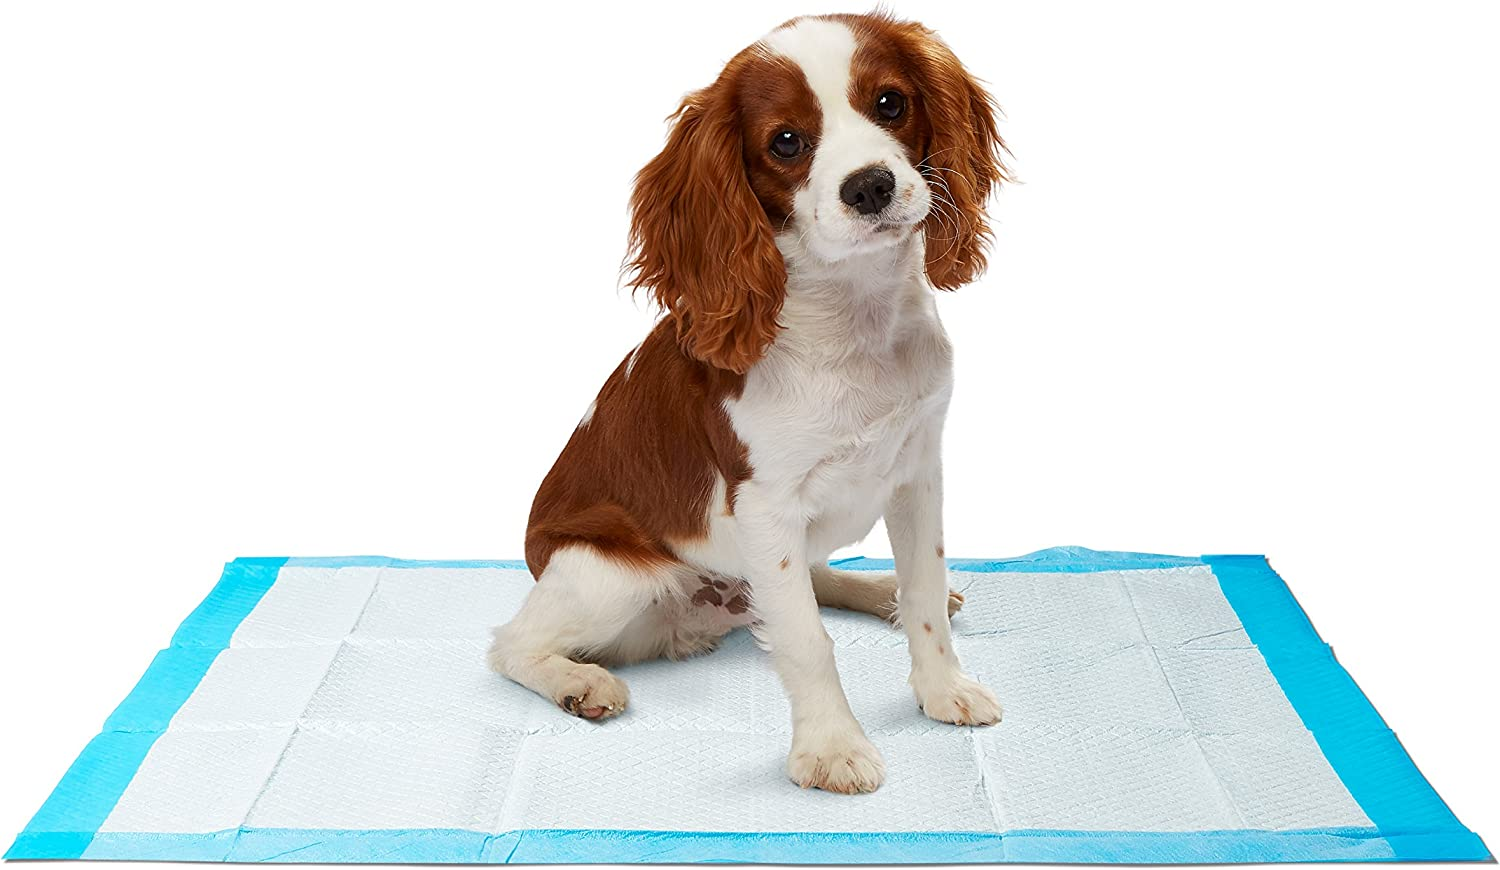 Dr. Dunley Dog & Puppy Pads, Super Absorbent, Easy Clean Up, 23 X 24  (200 Count)